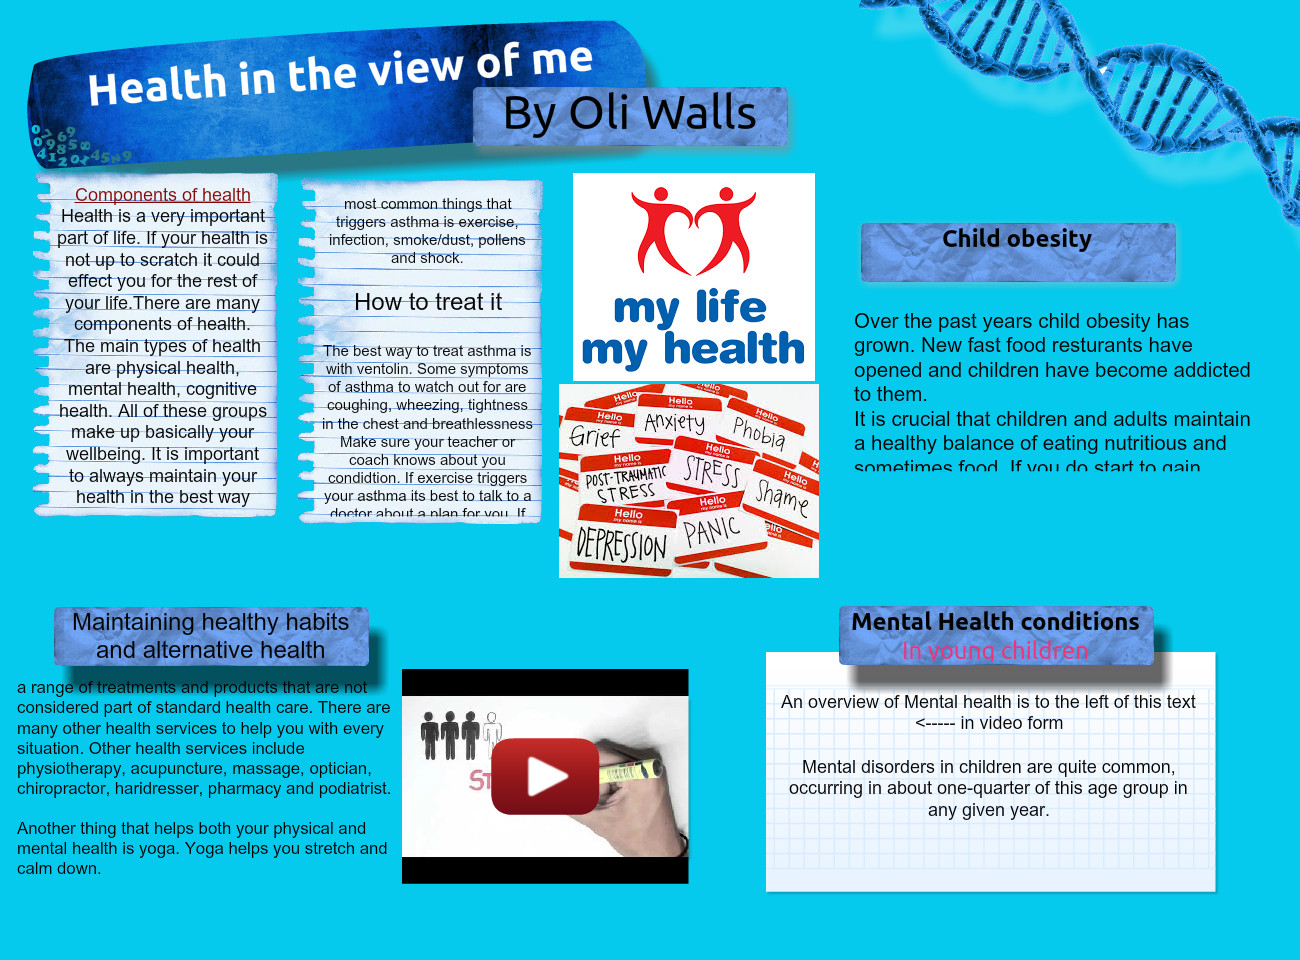 Health in view of me